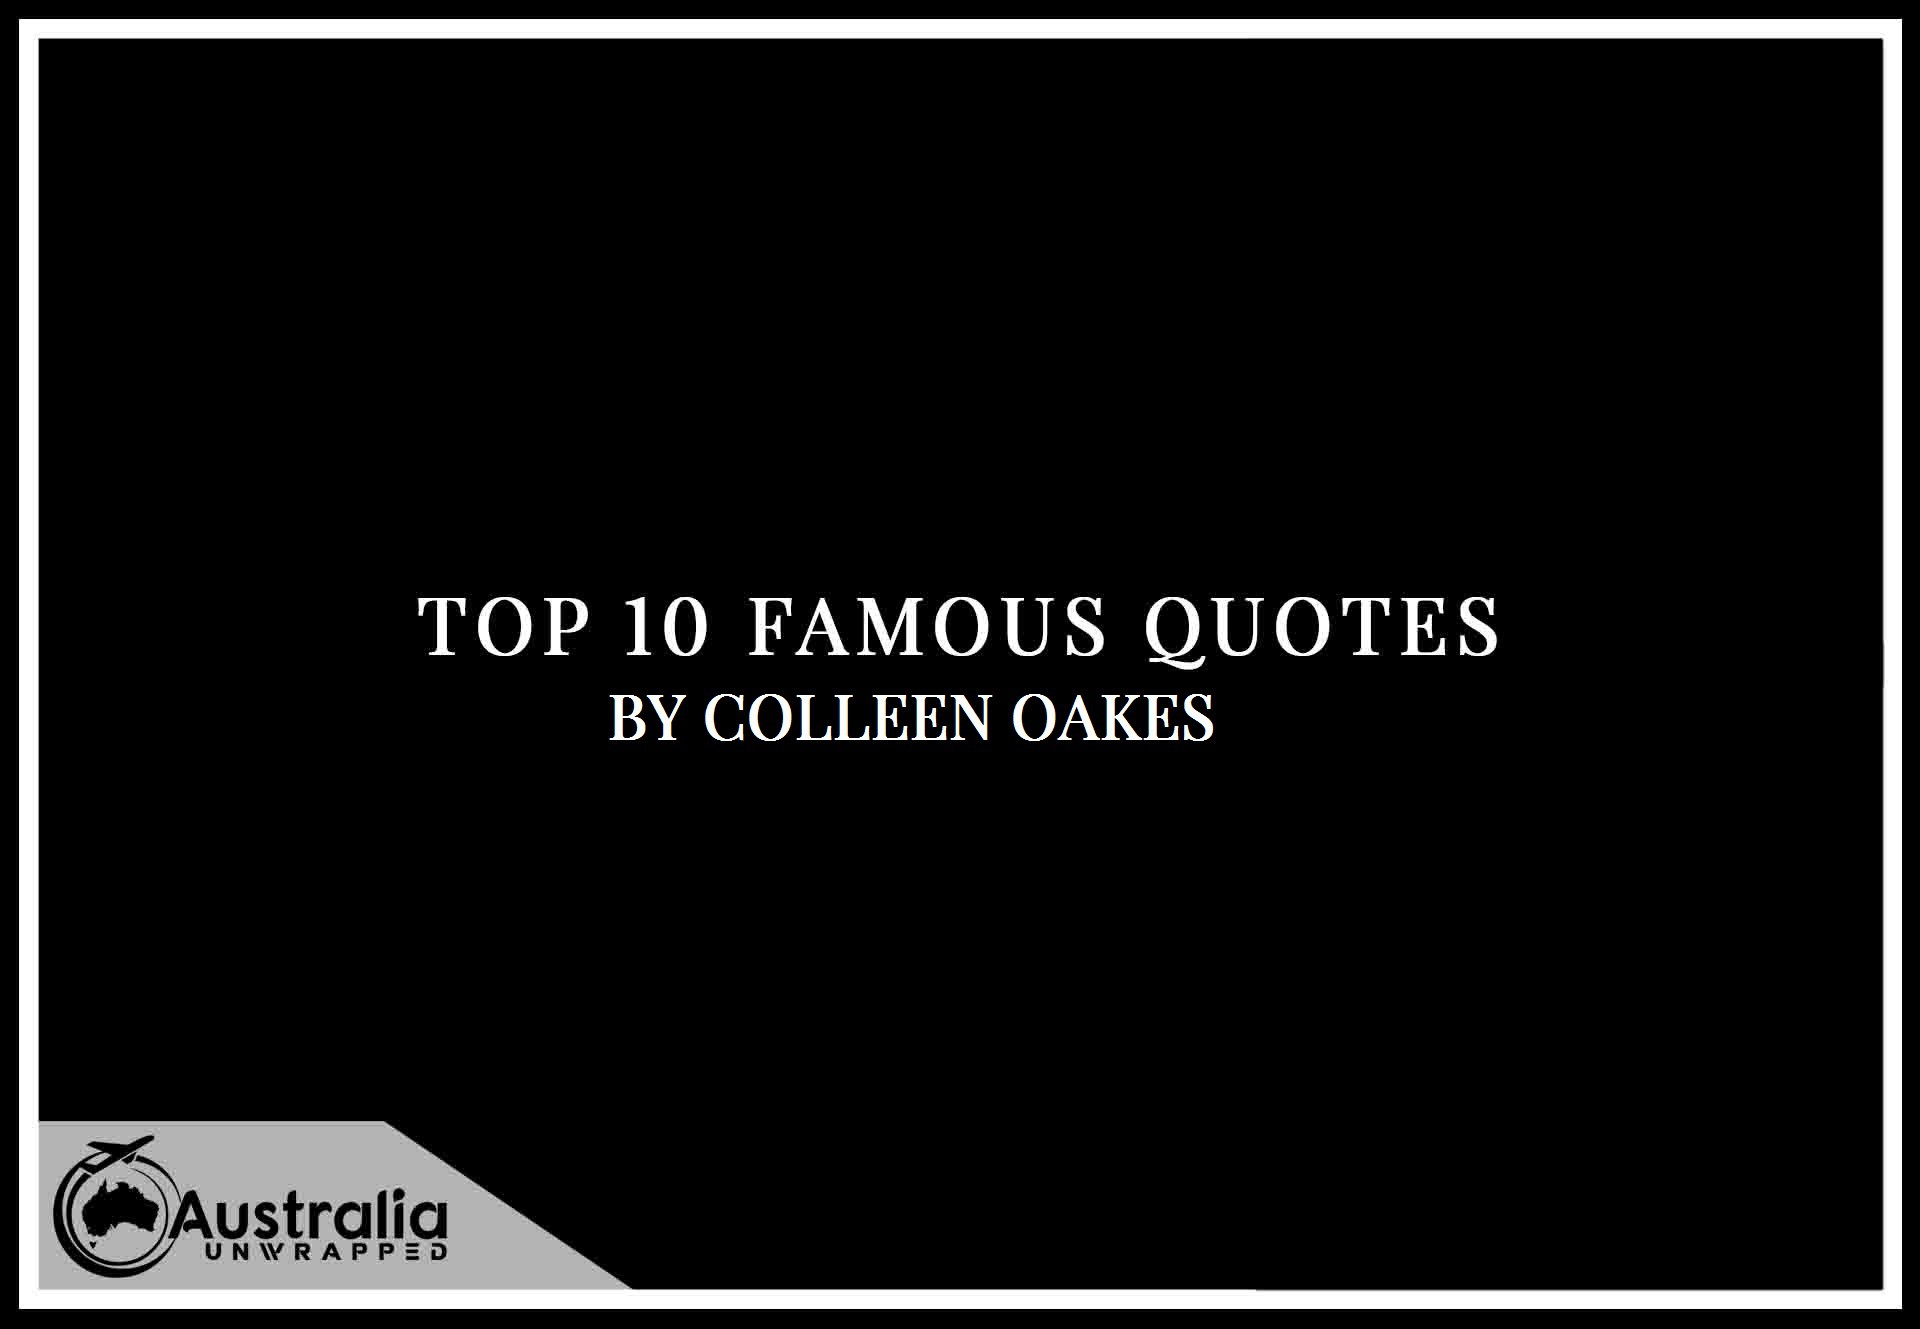 Colleen Oakes's Top 10 Popular and Famous Quotes